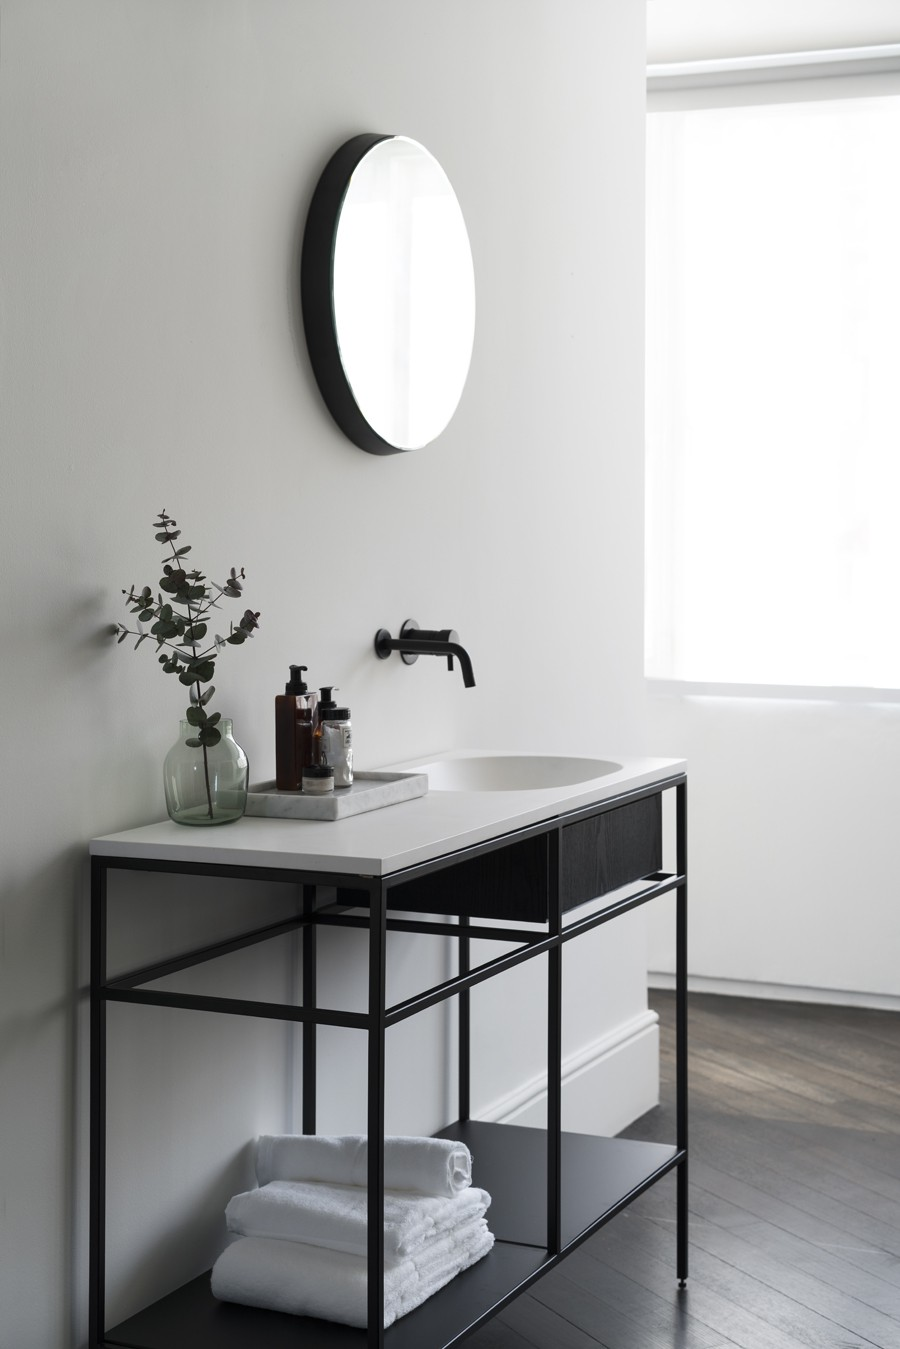 FRAME BY NORM ARCHITECTS FOR ex.t - ELISABETH HEIER